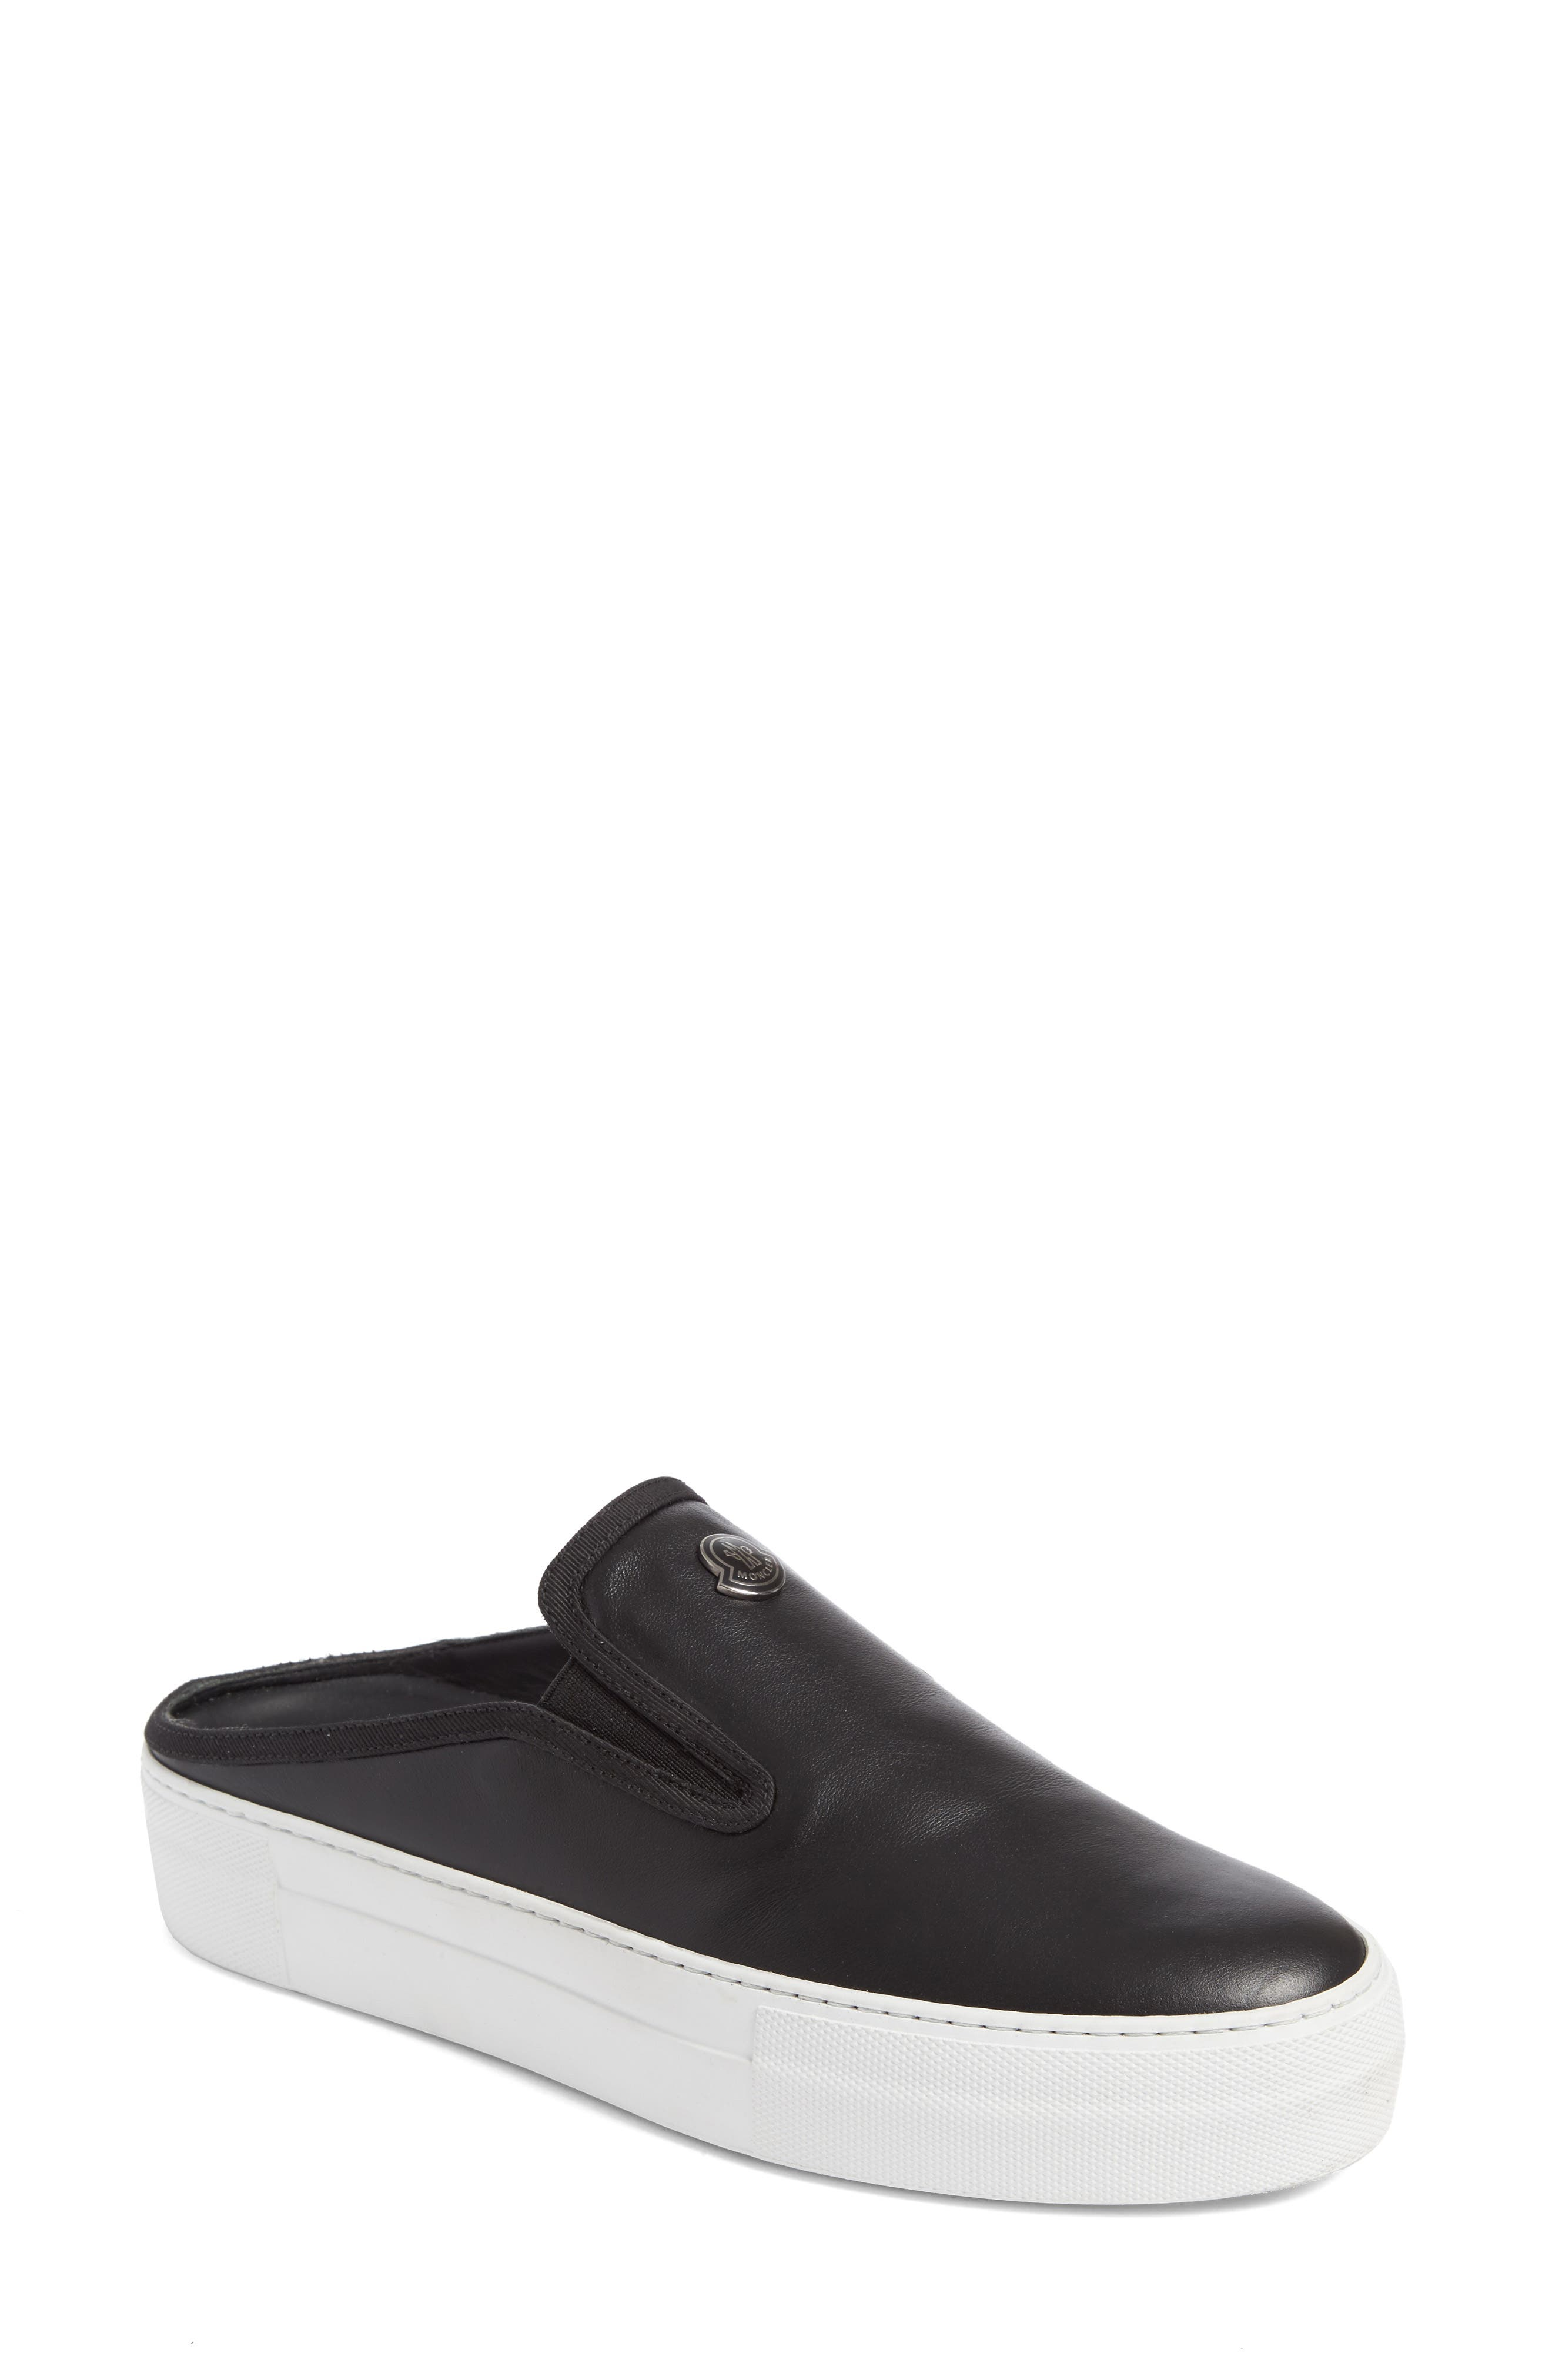 Tiphanie Backless Platform Sneaker,                             Main thumbnail 1, color,                             Black Leather